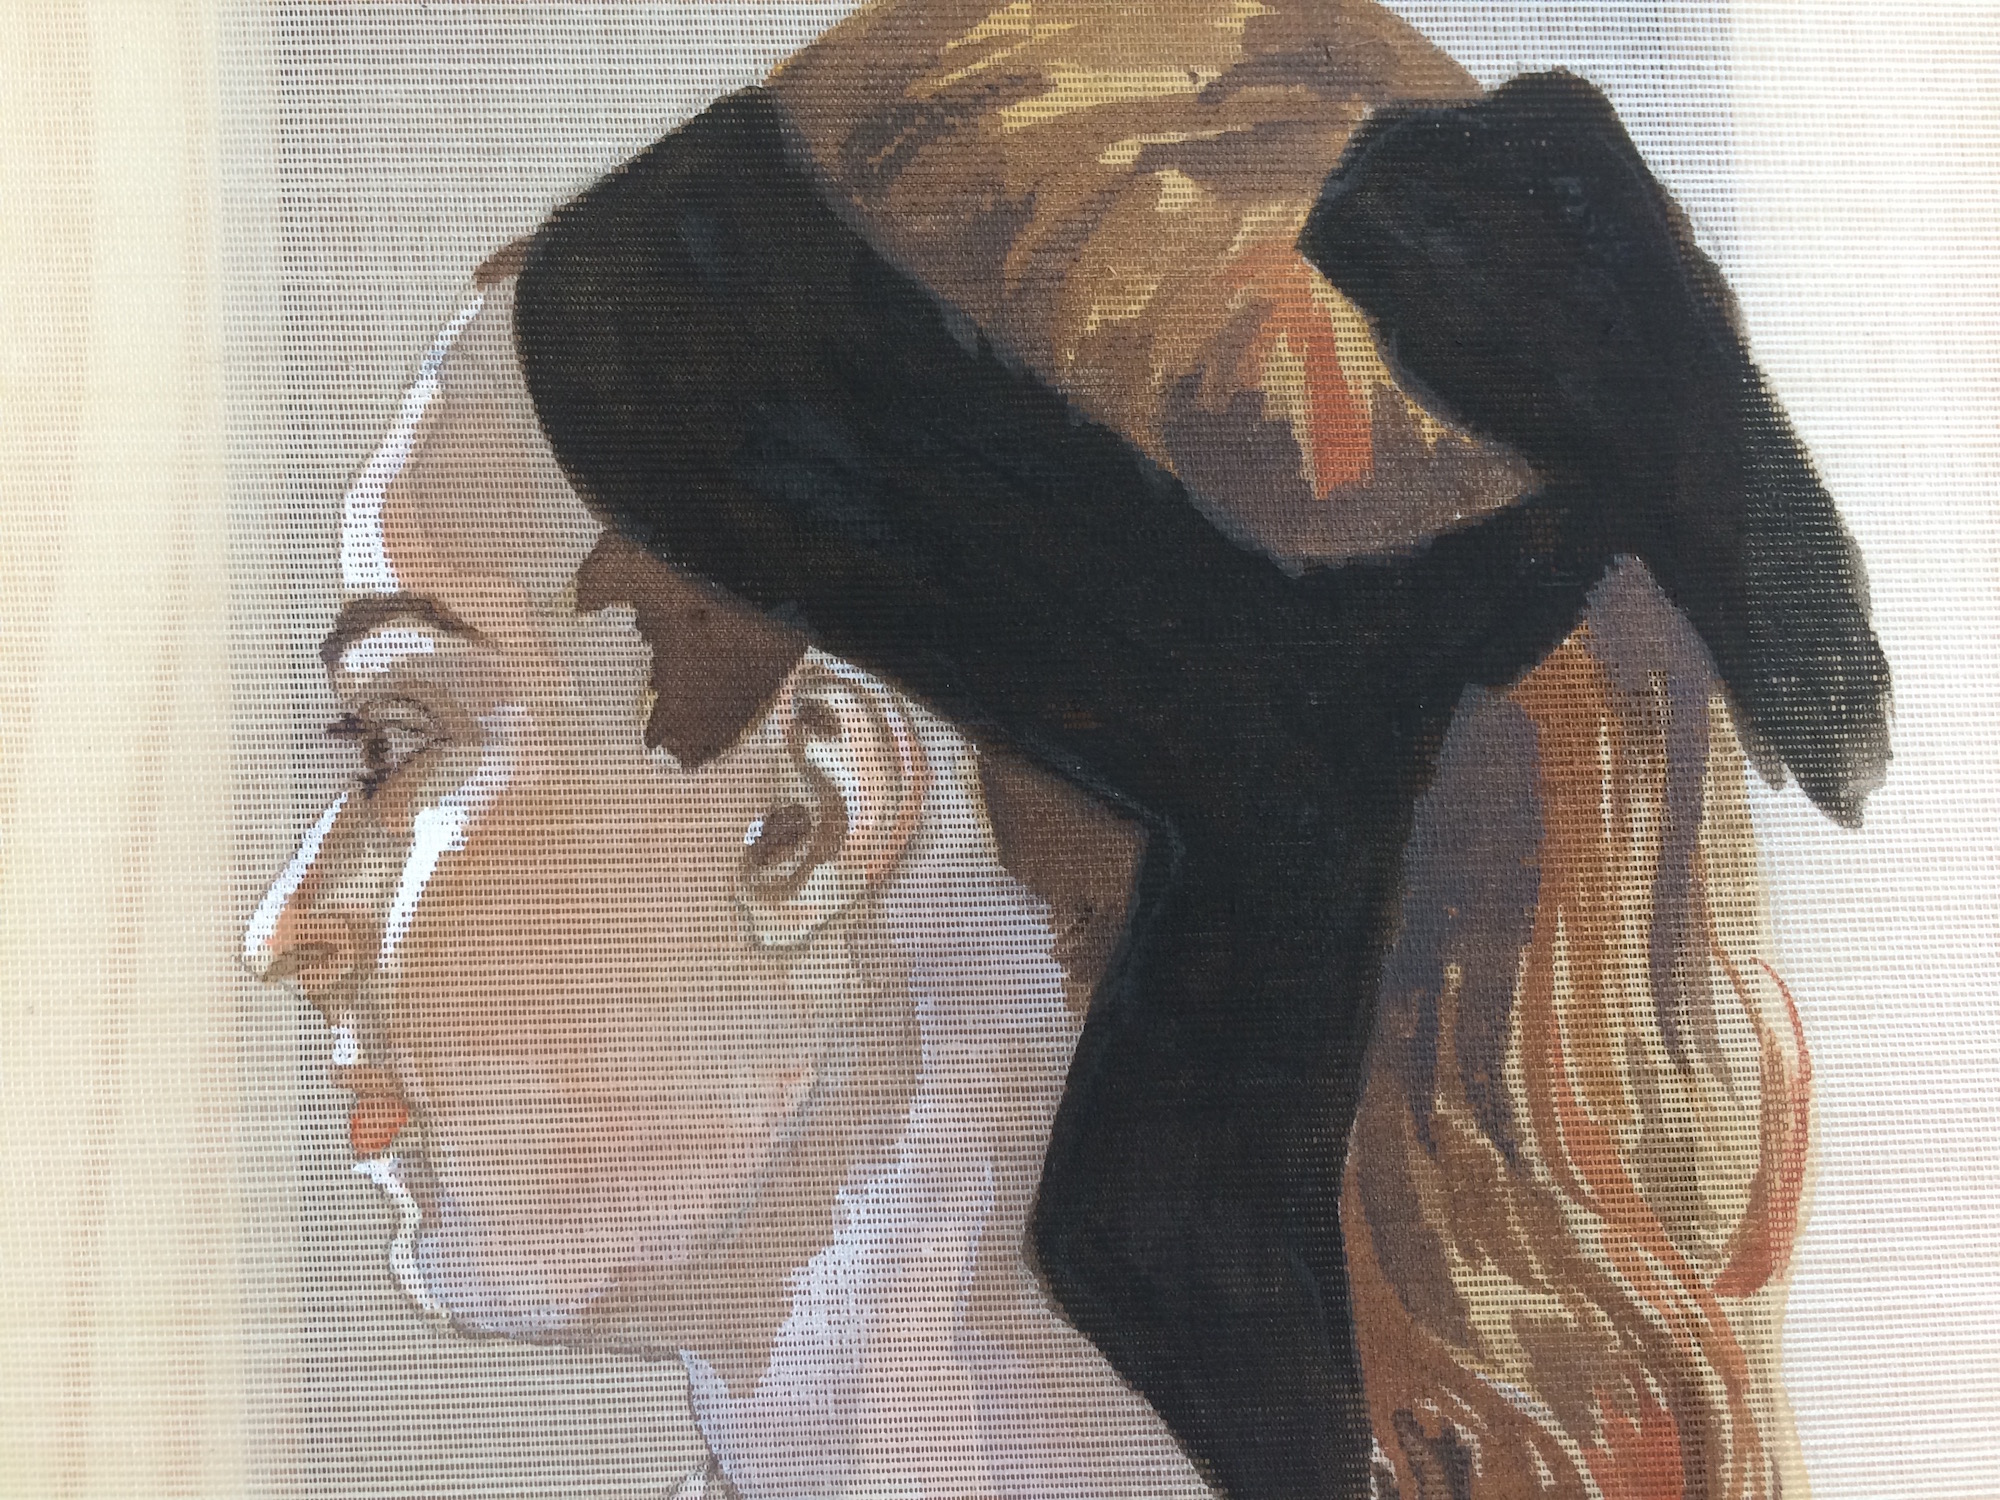 Profile of a Woman with Black Band